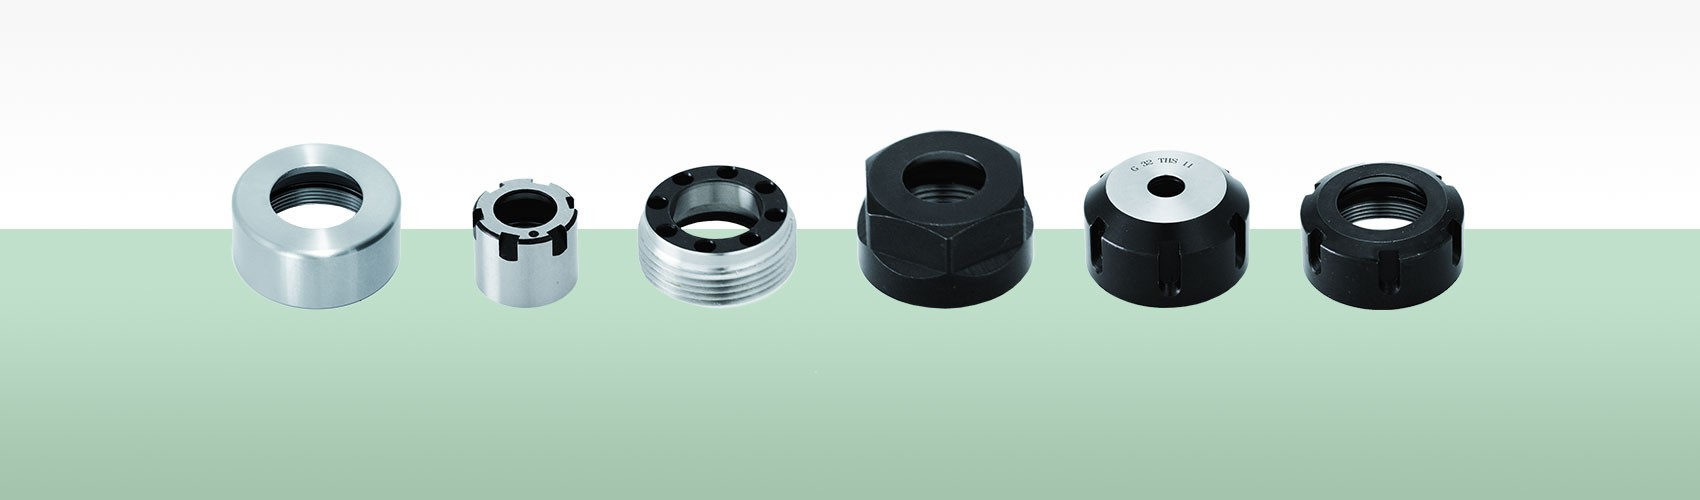 Serinex Clamping Nuts